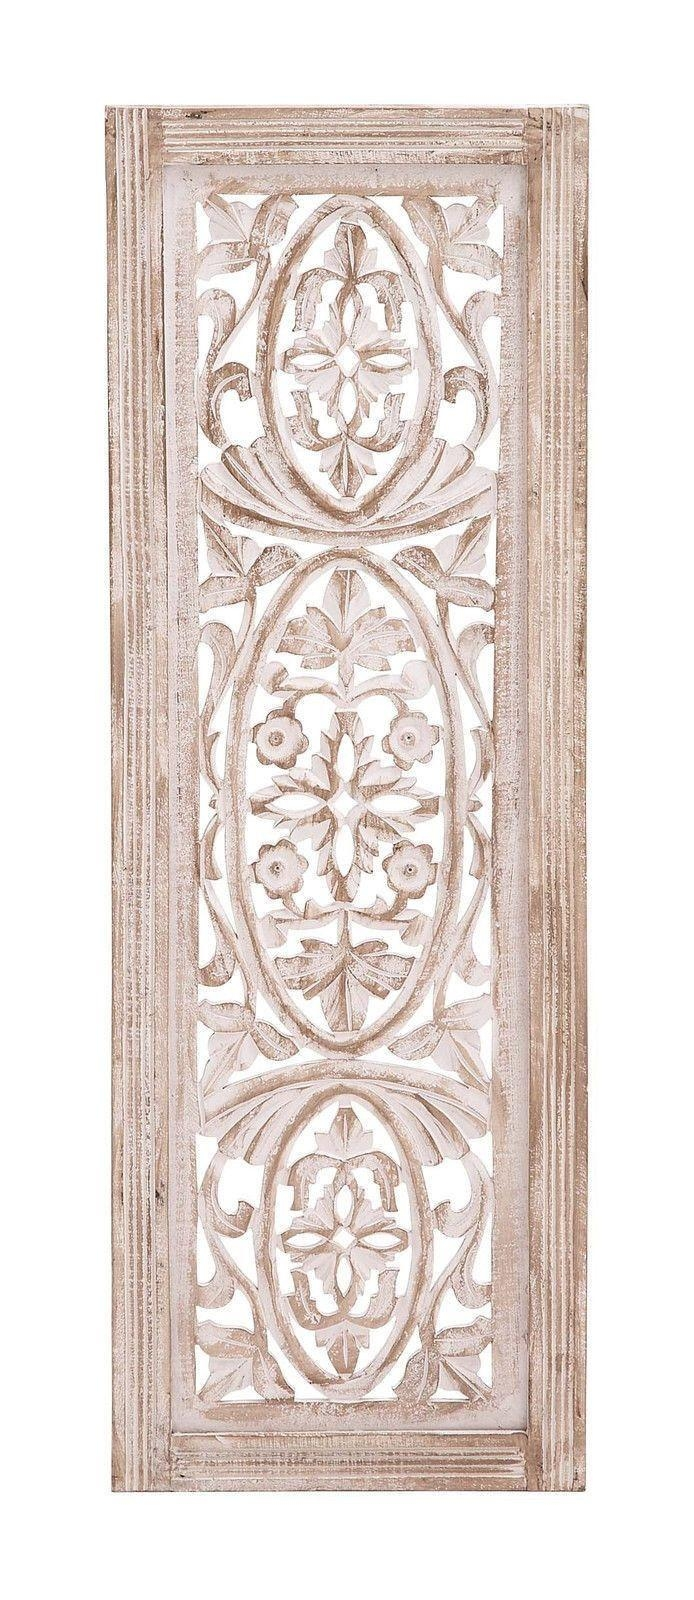 Top 25+ Best Carved Wood Wall Art Ideas On Pinterest | Thai Decor Throughout White Wooden Wall Art (View 3 of 20)